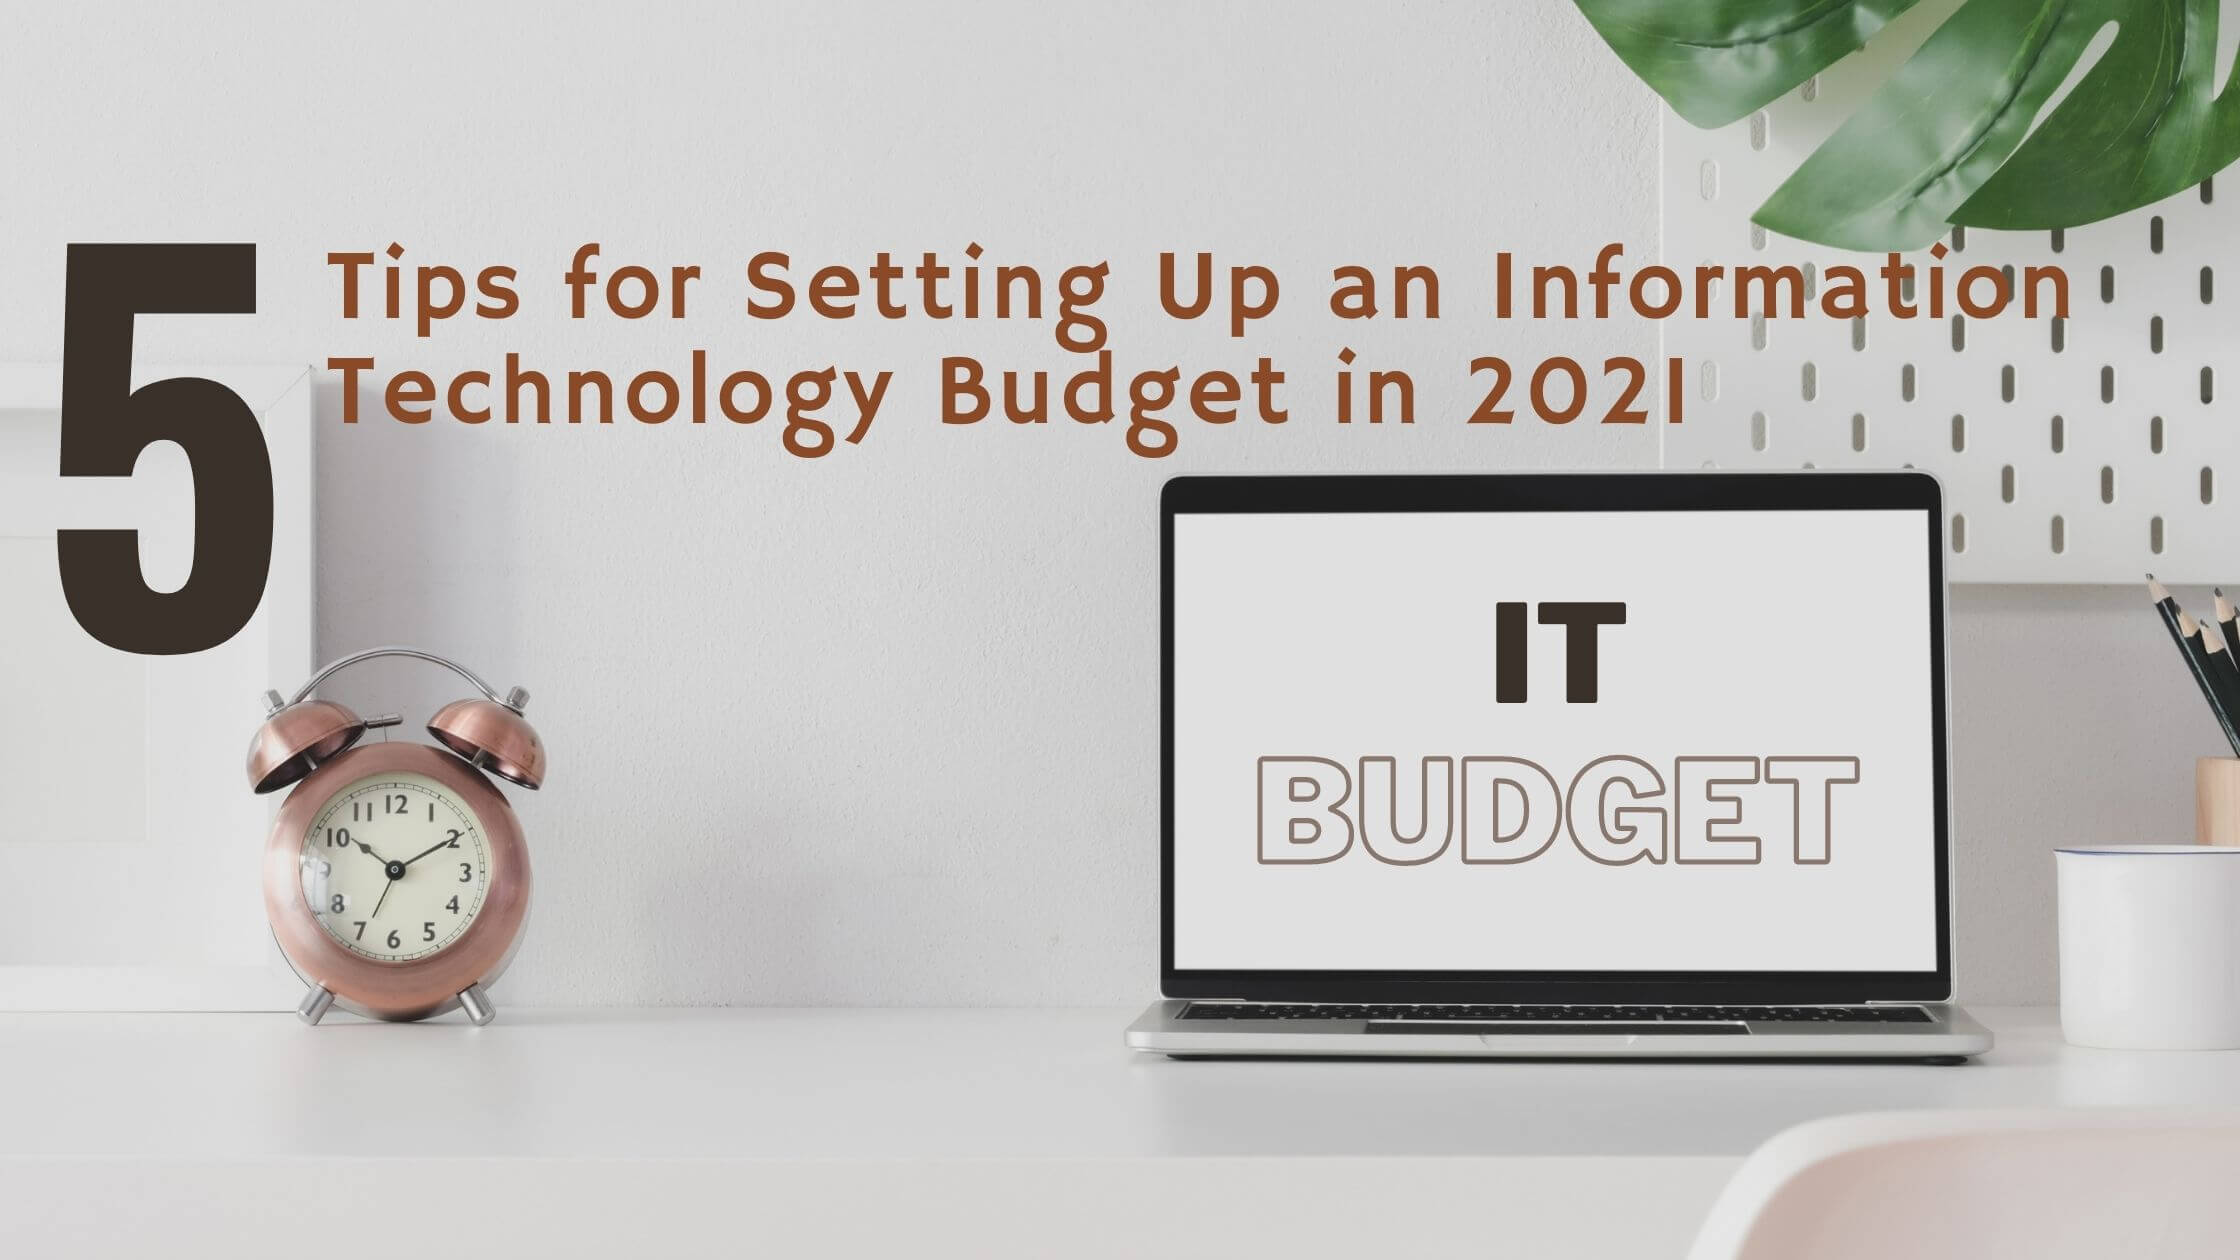 Tips for Setting Up an Information Technology Budget